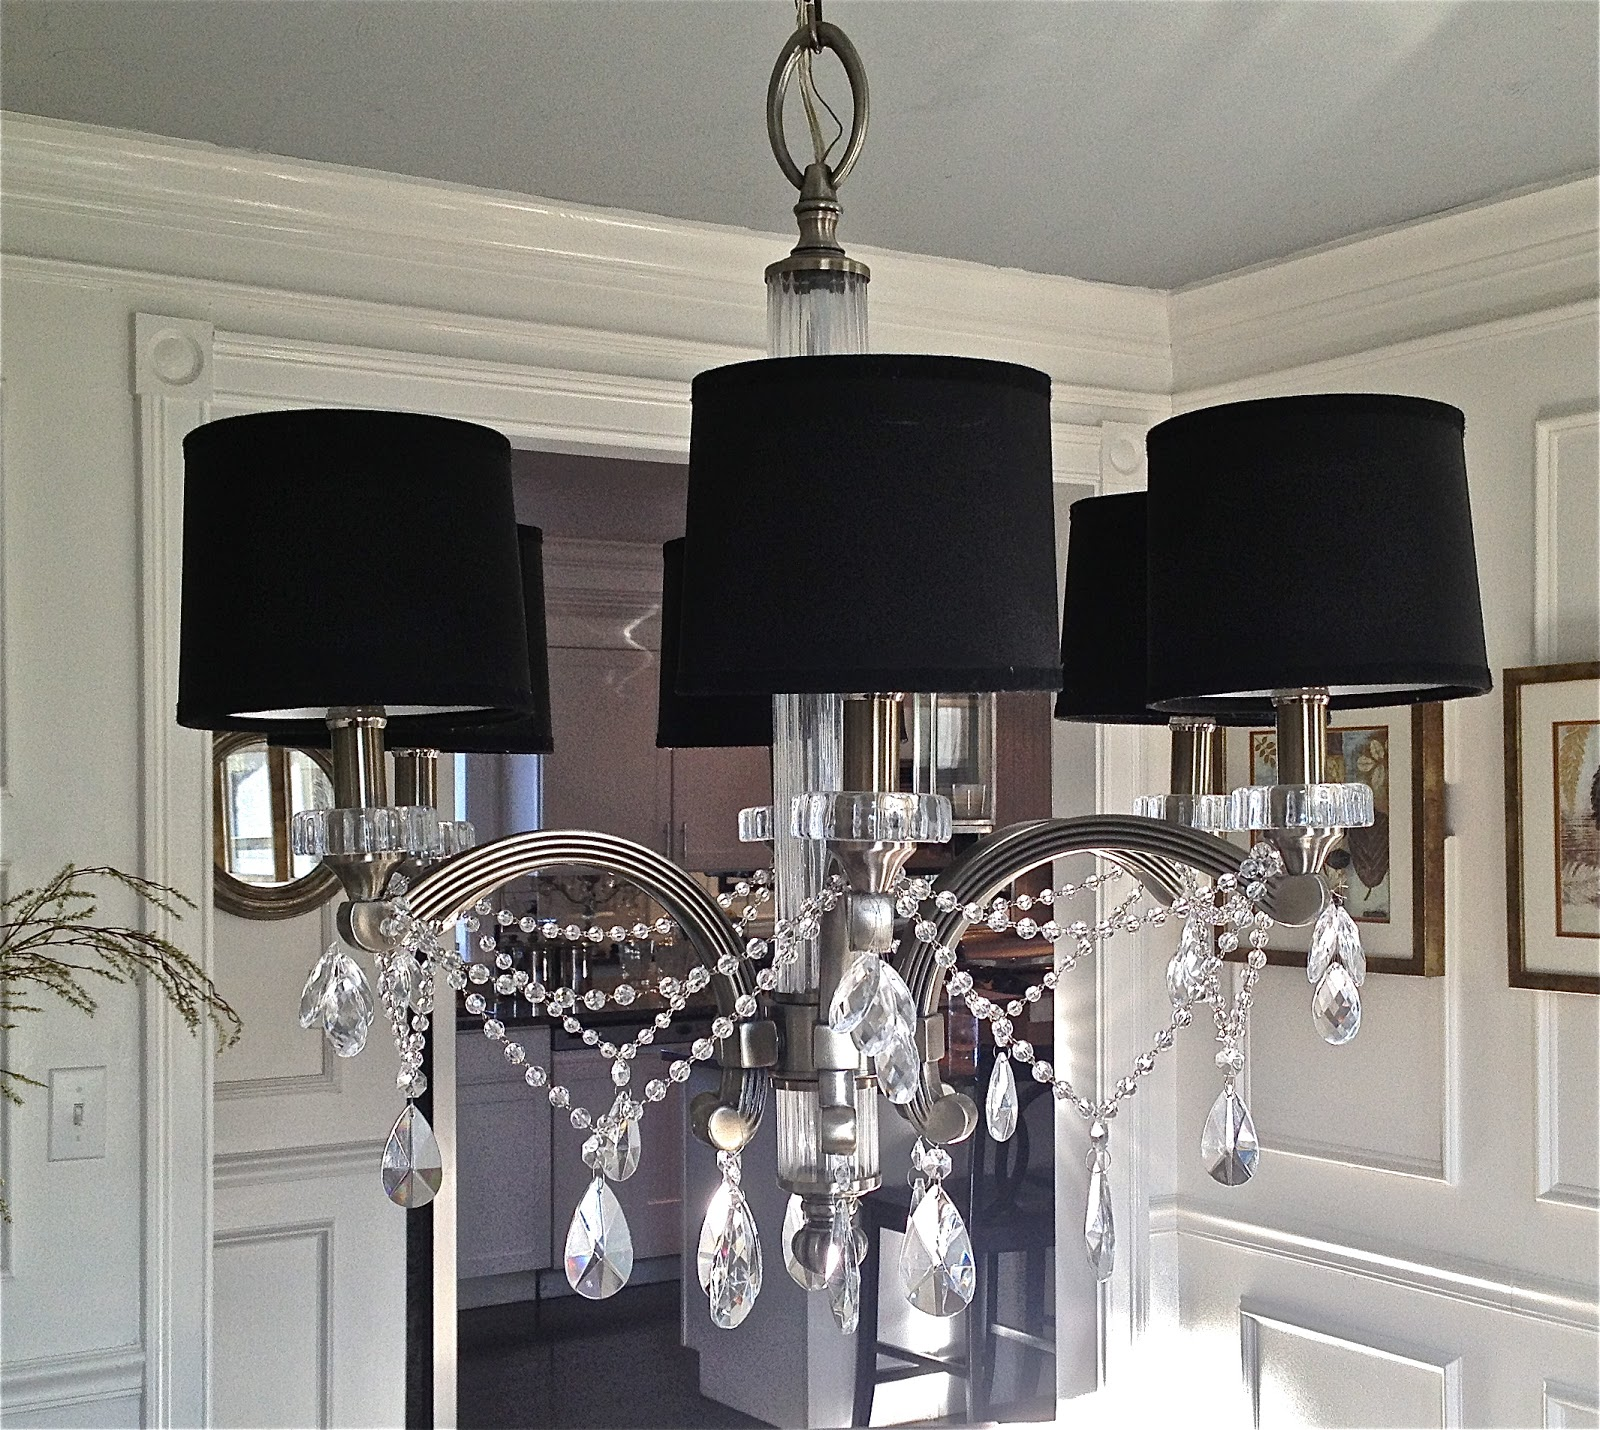 How to make a cheap chandelier my web value how to make a crystal chandelier thursday november 8 2012 aloadofball Images